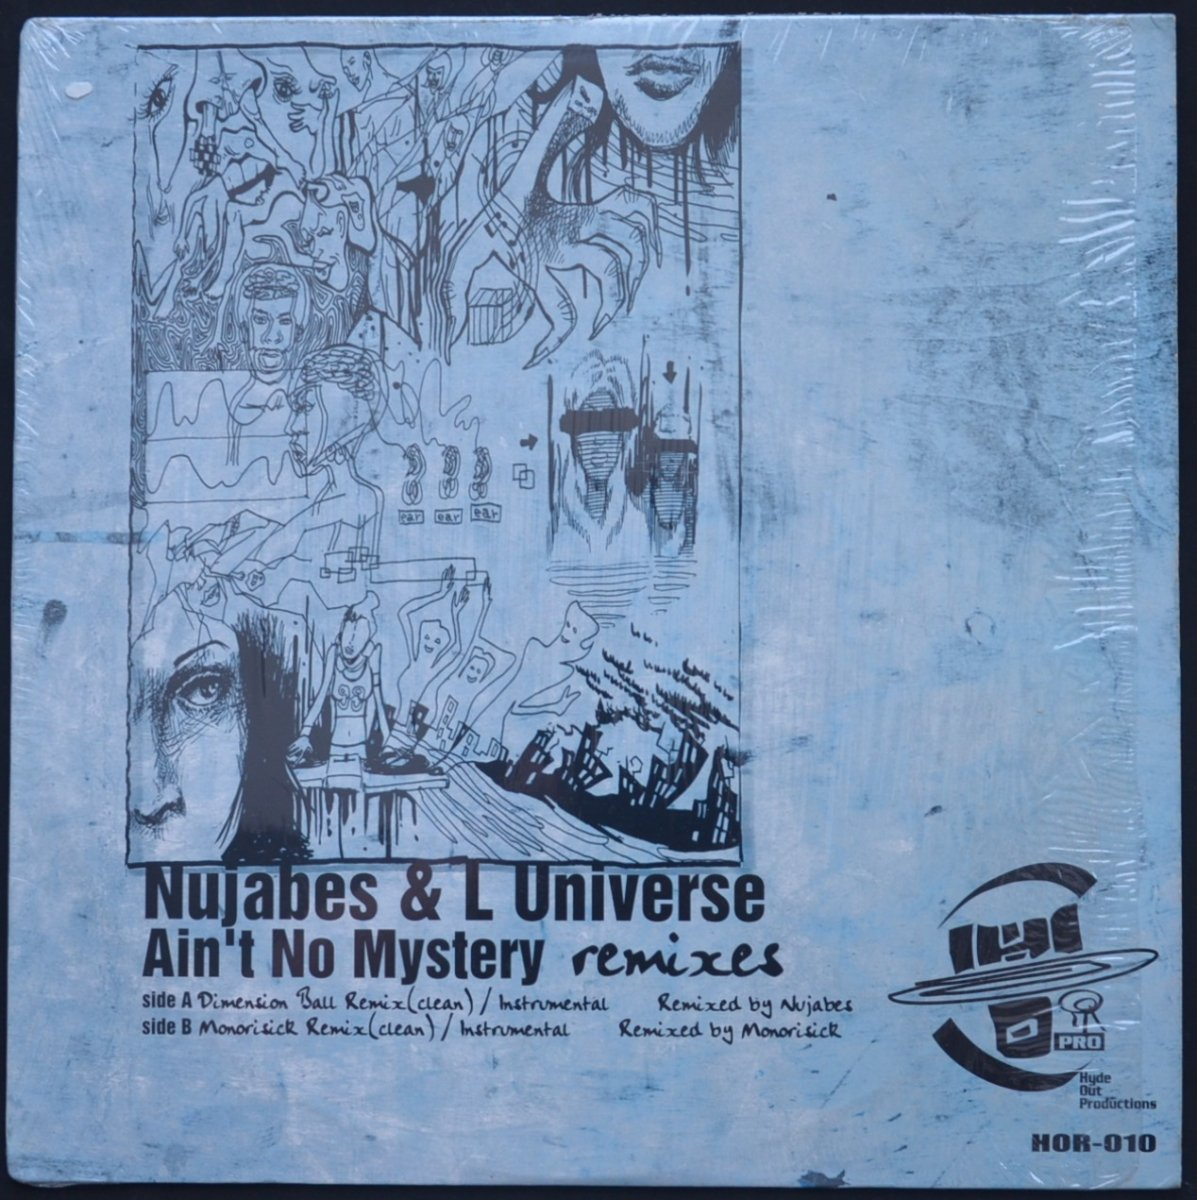 NUJABES FEATURING L-UNIVERSE / AIN'T NO MYSTERY REMIXES (12